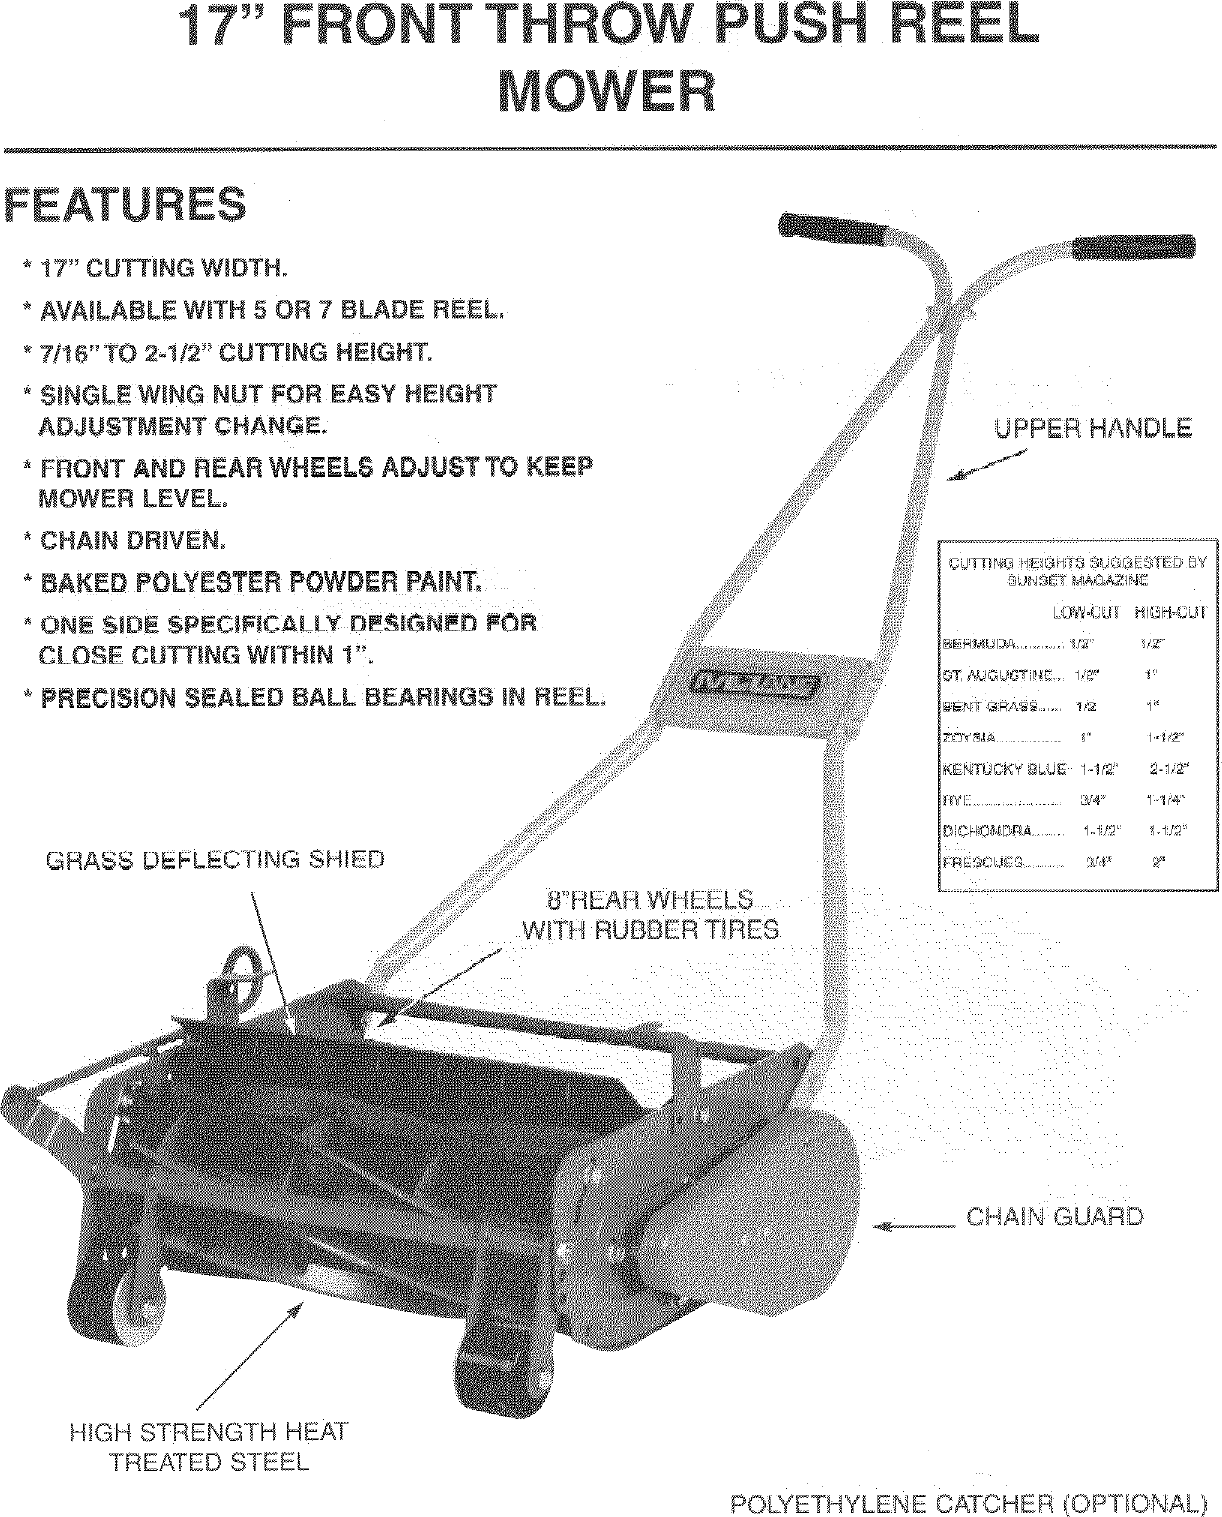 How To Choose A Reel Mower Manual Guide